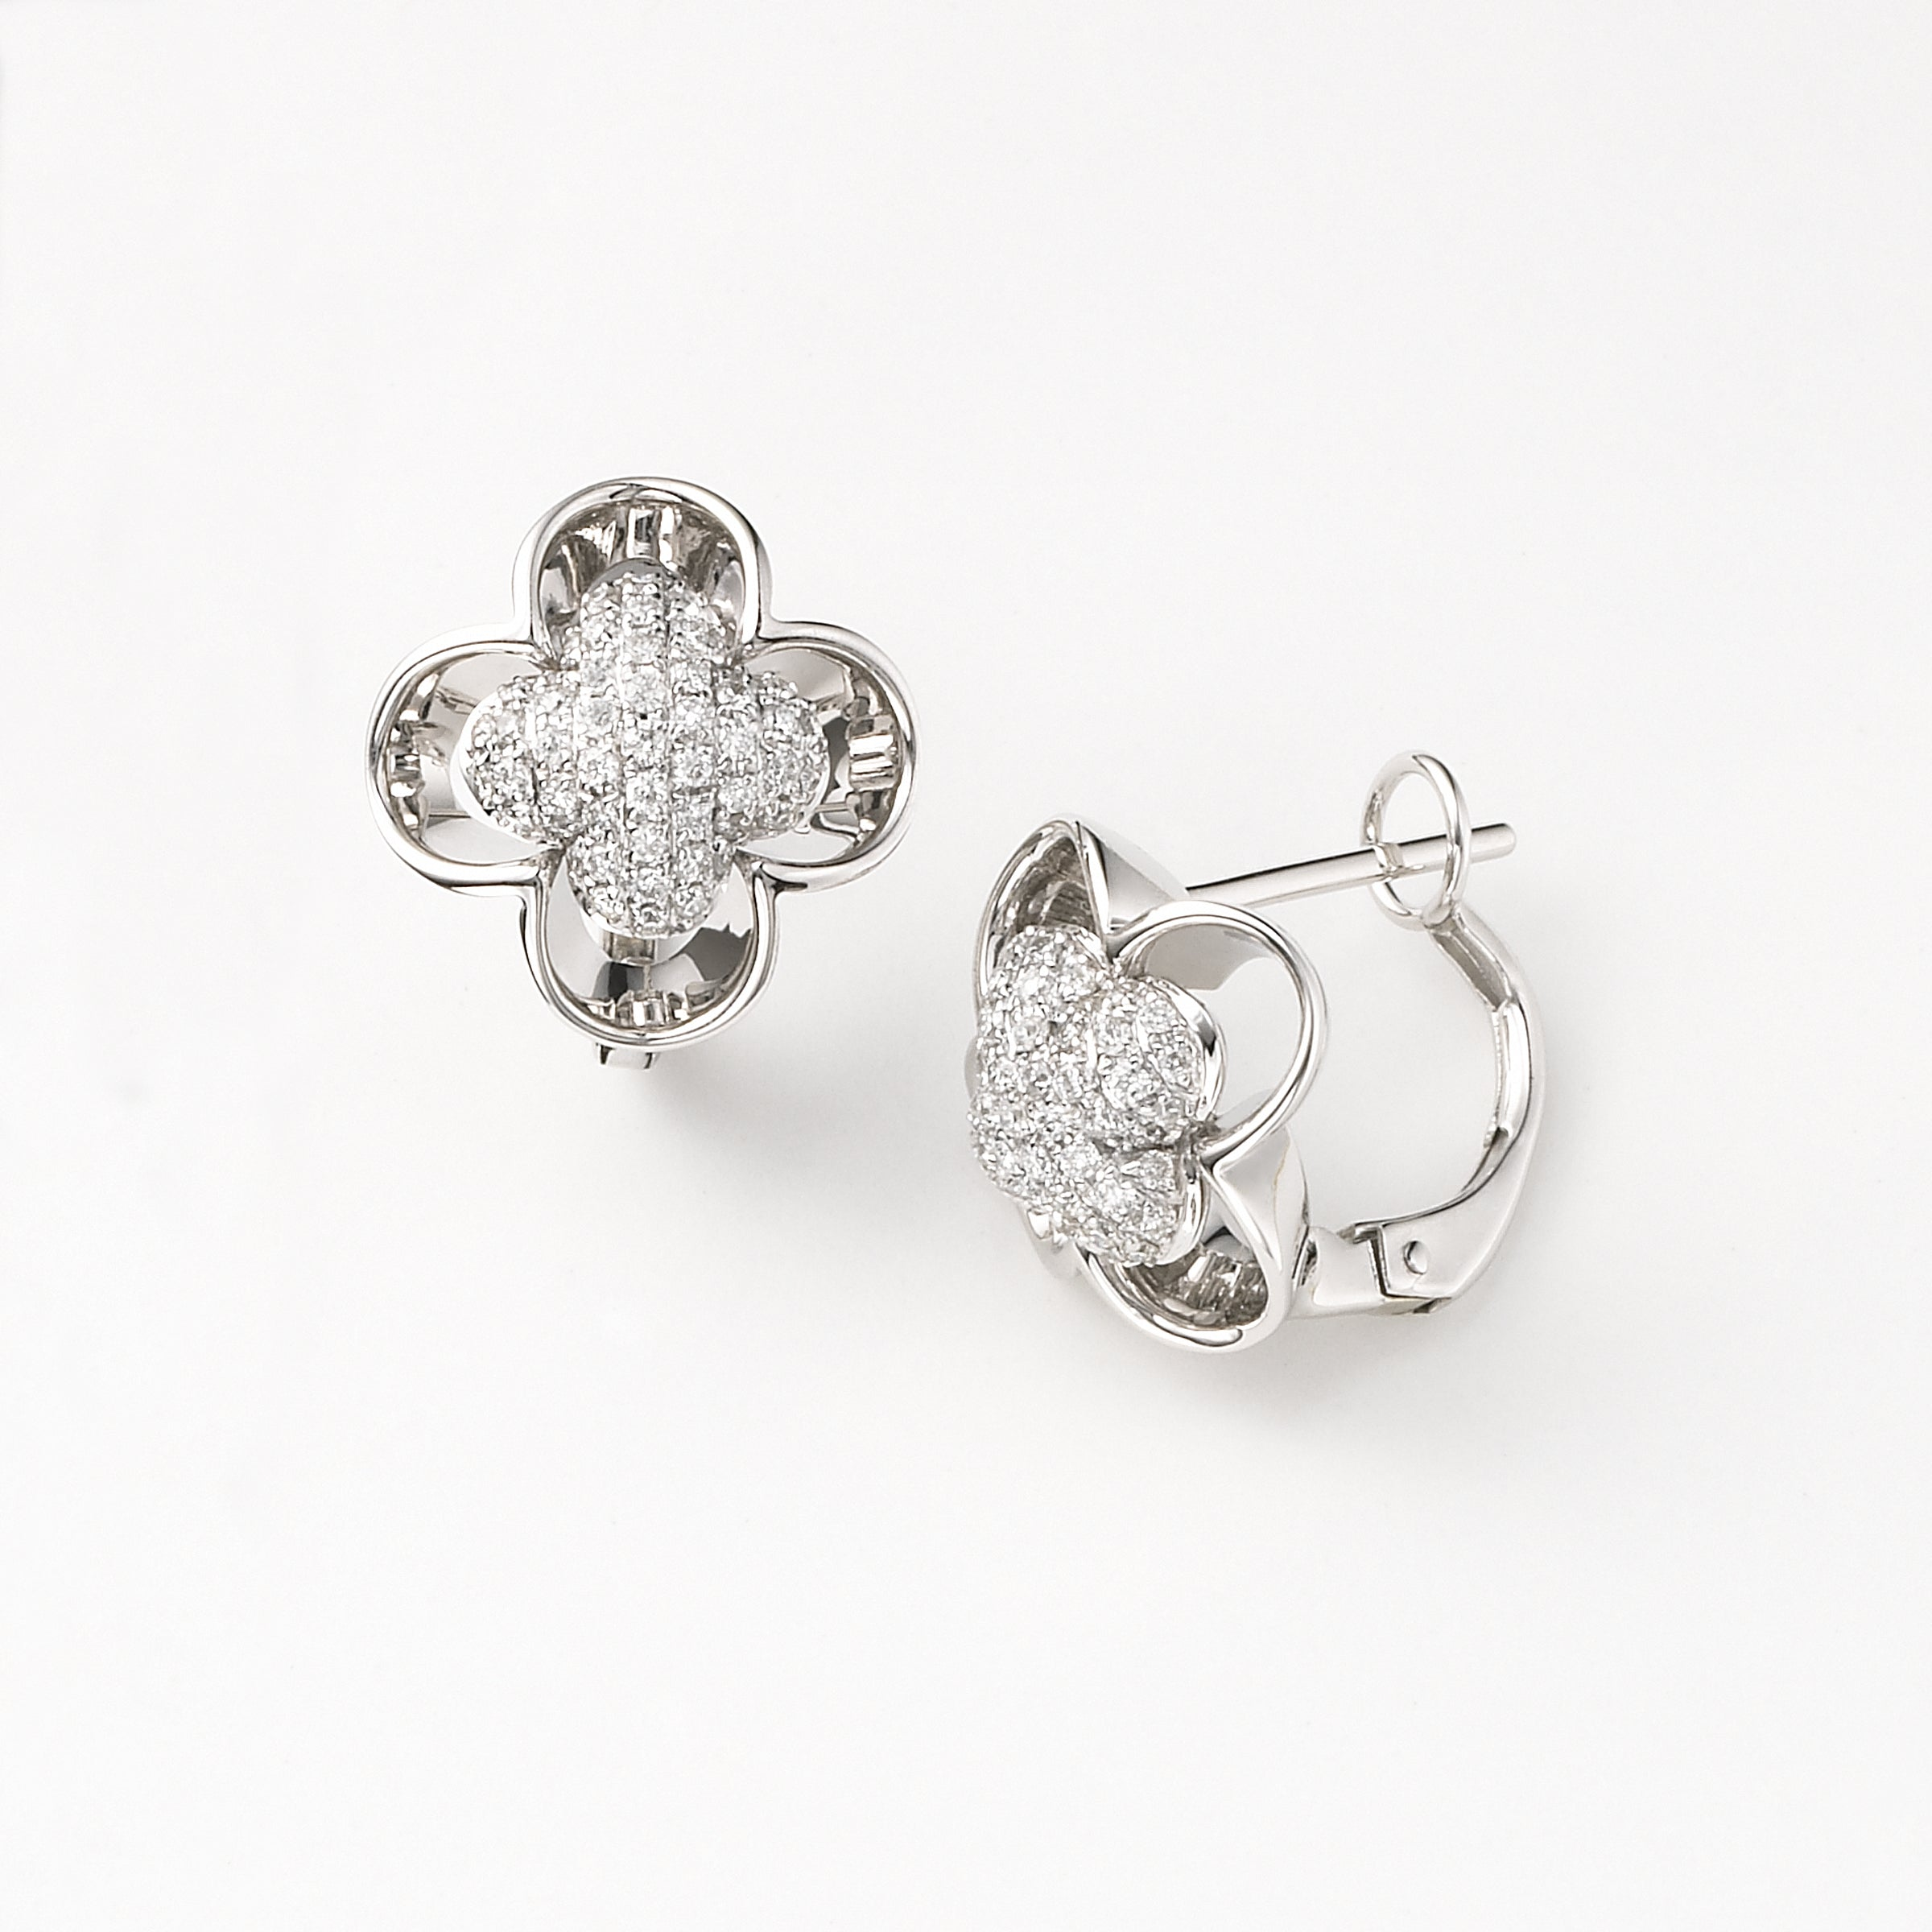 Diamond Flower Earrings, .36 Carat, 14K White Gold